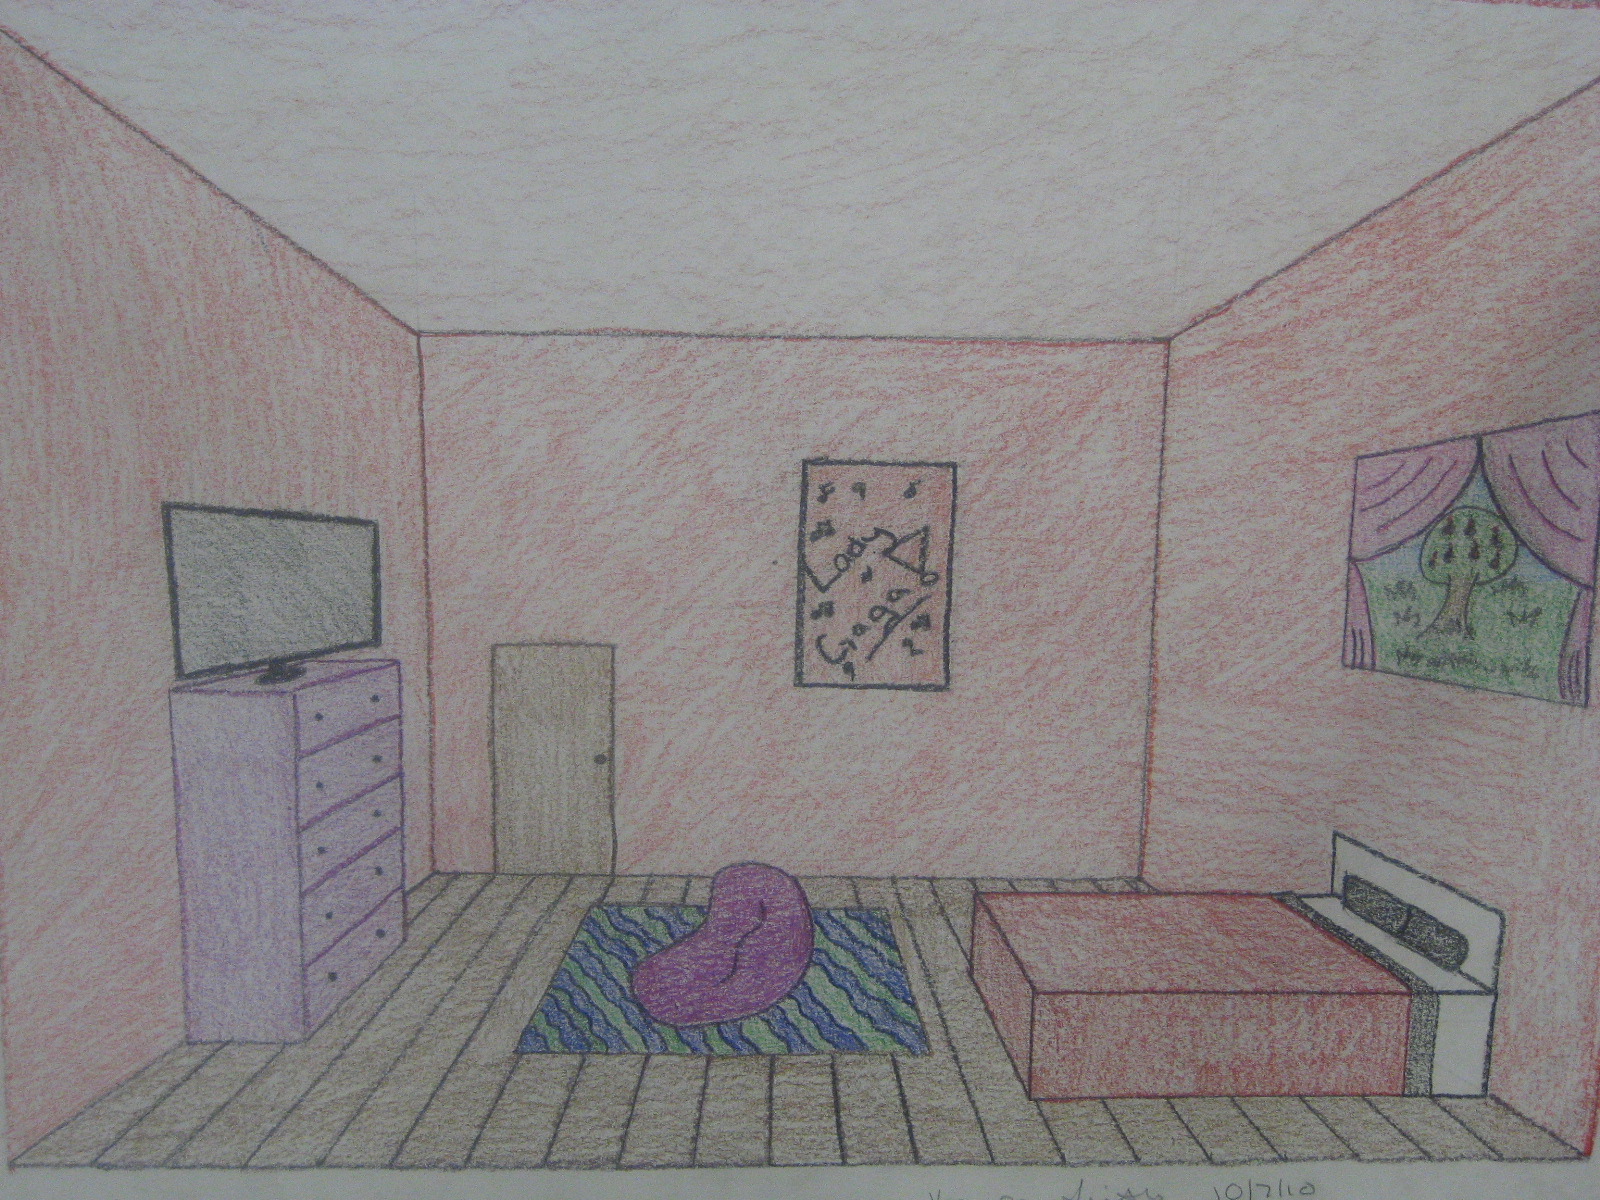 Here are some of the rooms the students have drawn: title=